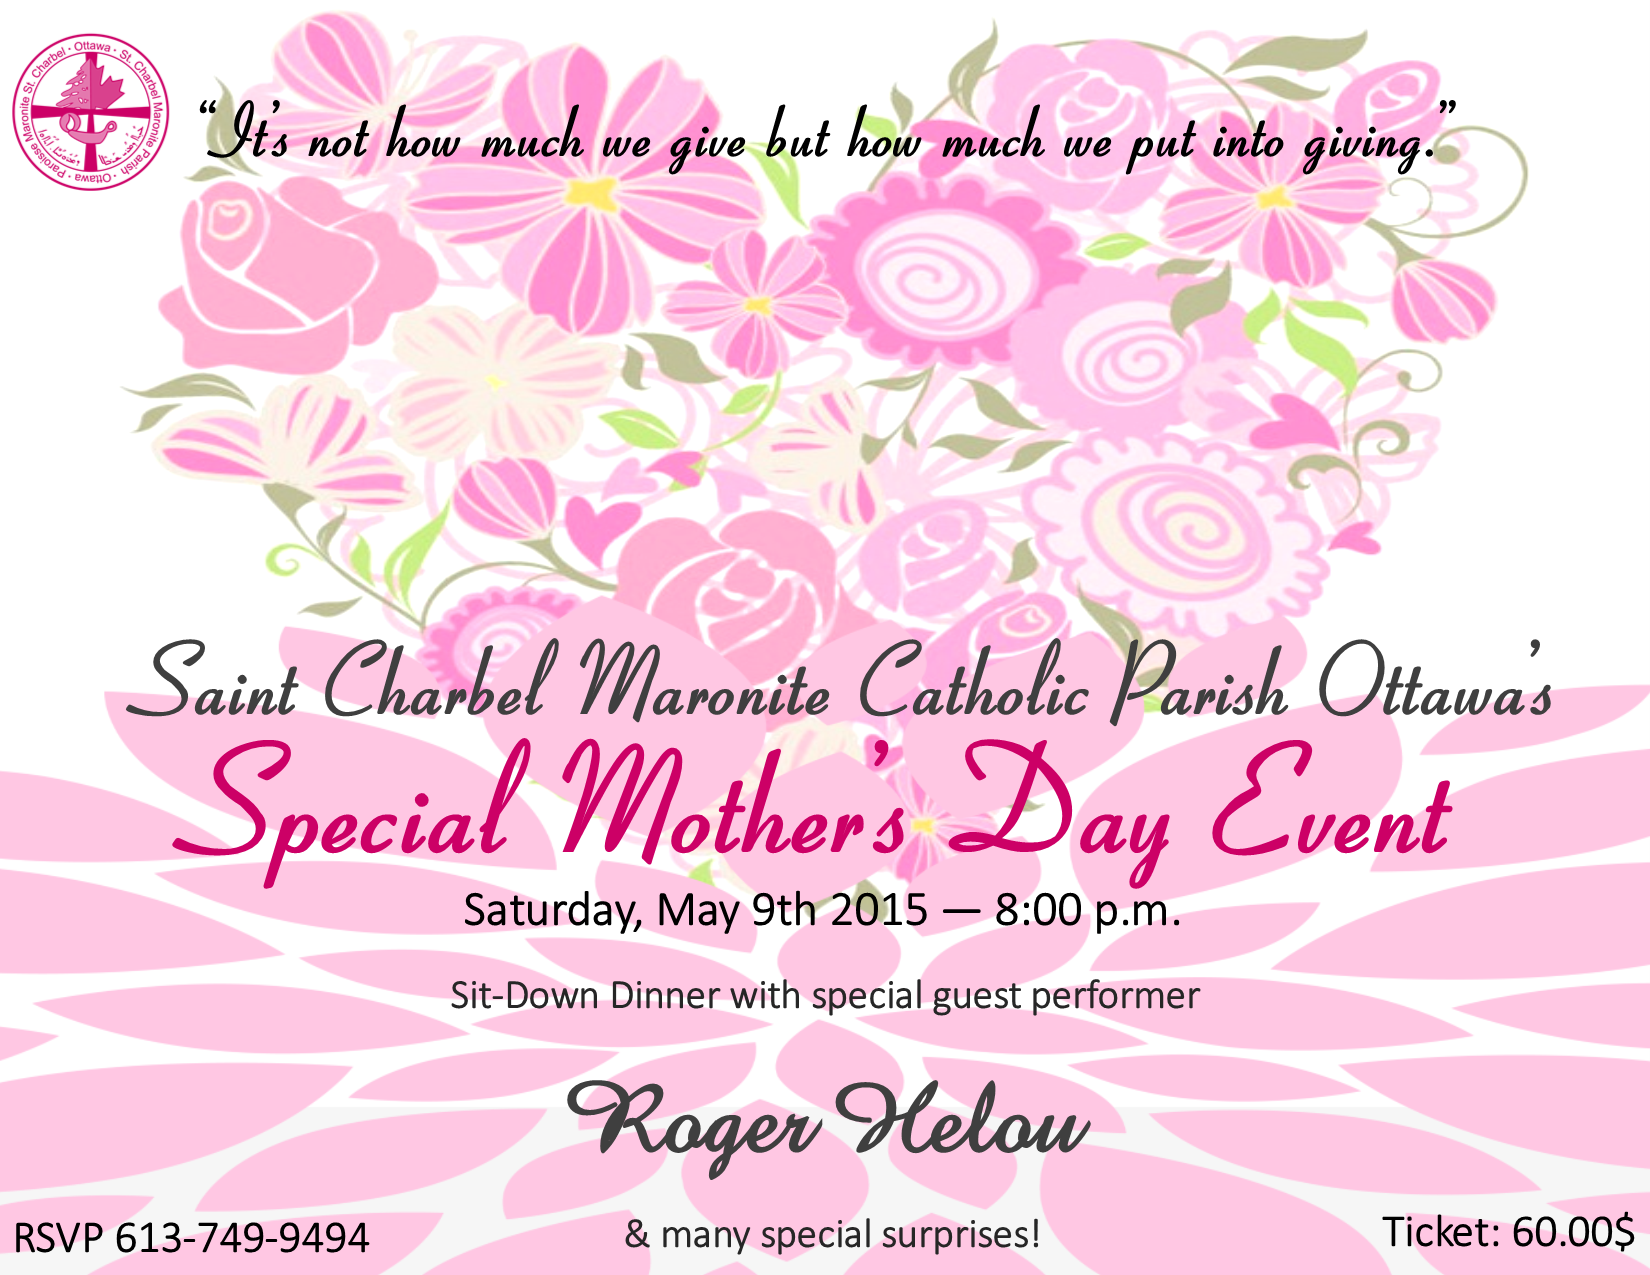 Special Mother's Day Event – Ottawa – Saint Charbel